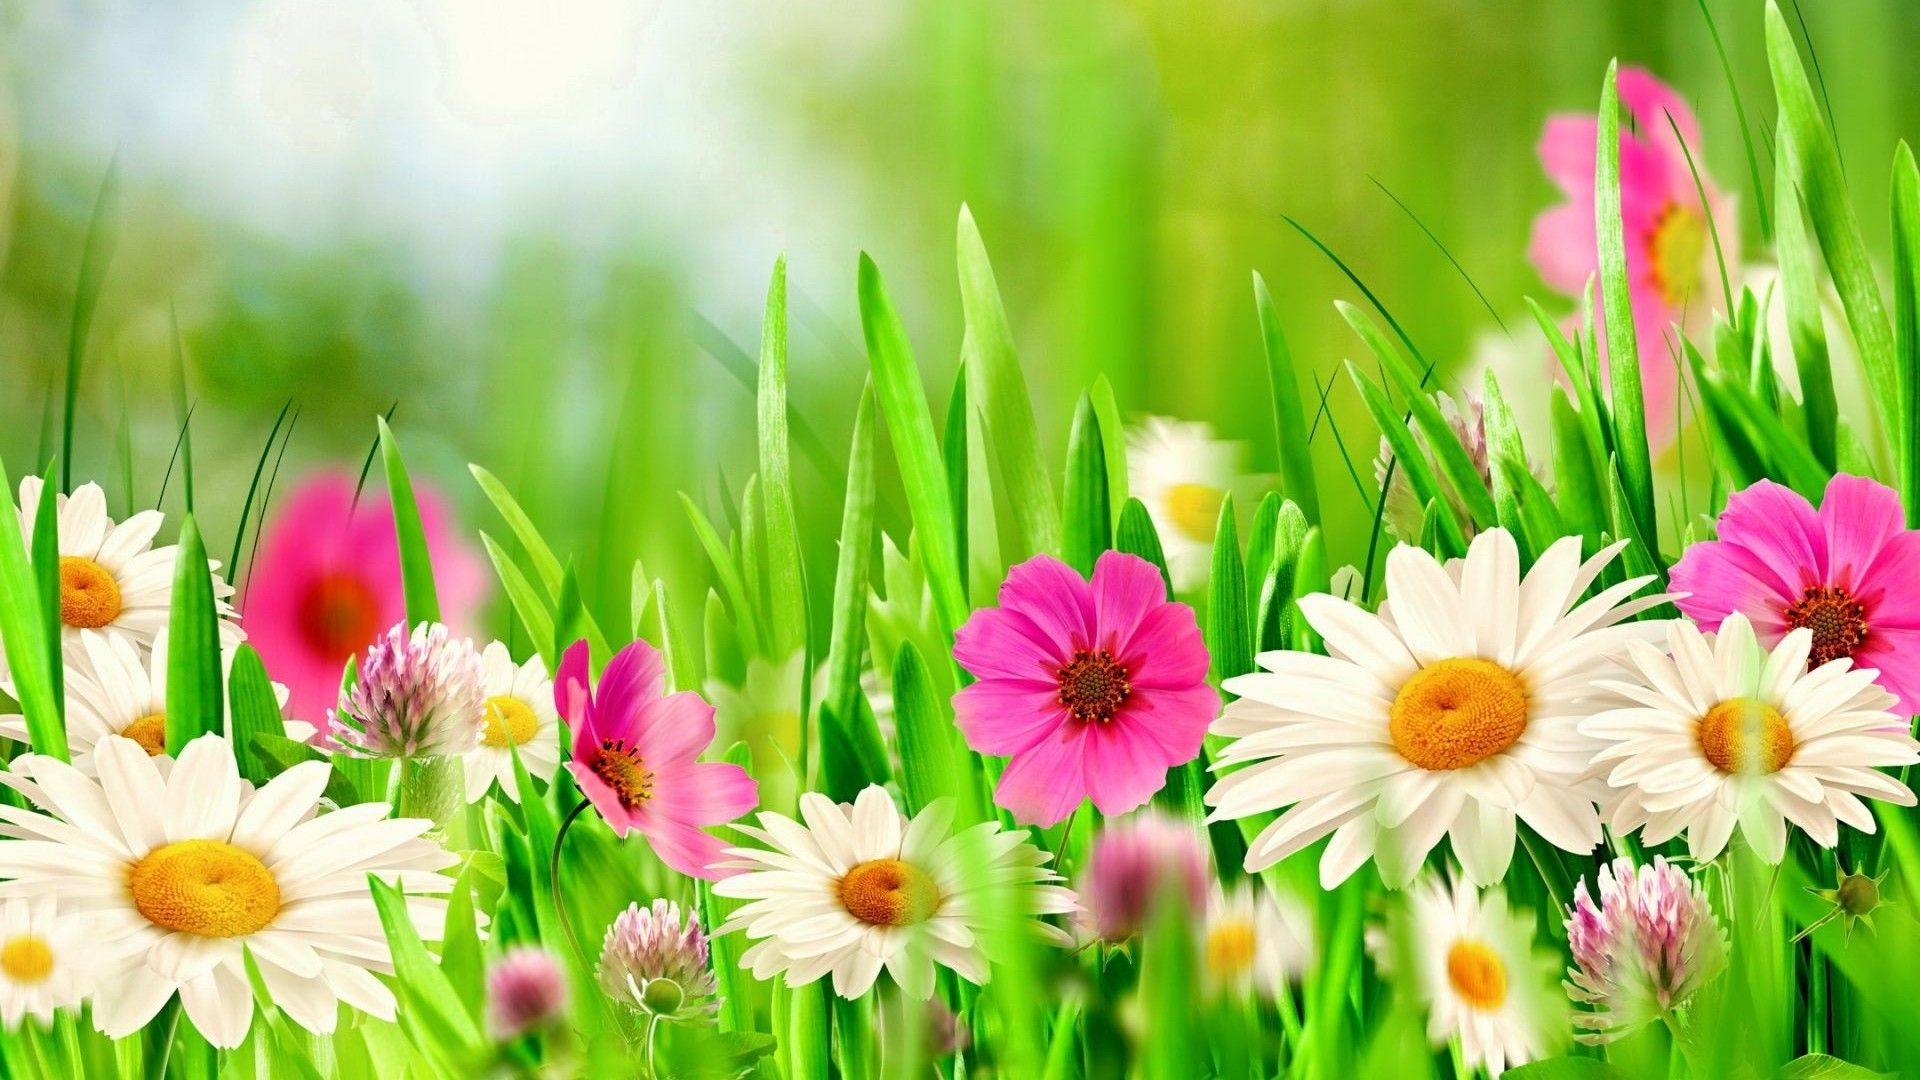 Wallpaper HD Beautiful Spring Cover photos Spring flowers 1920x1080